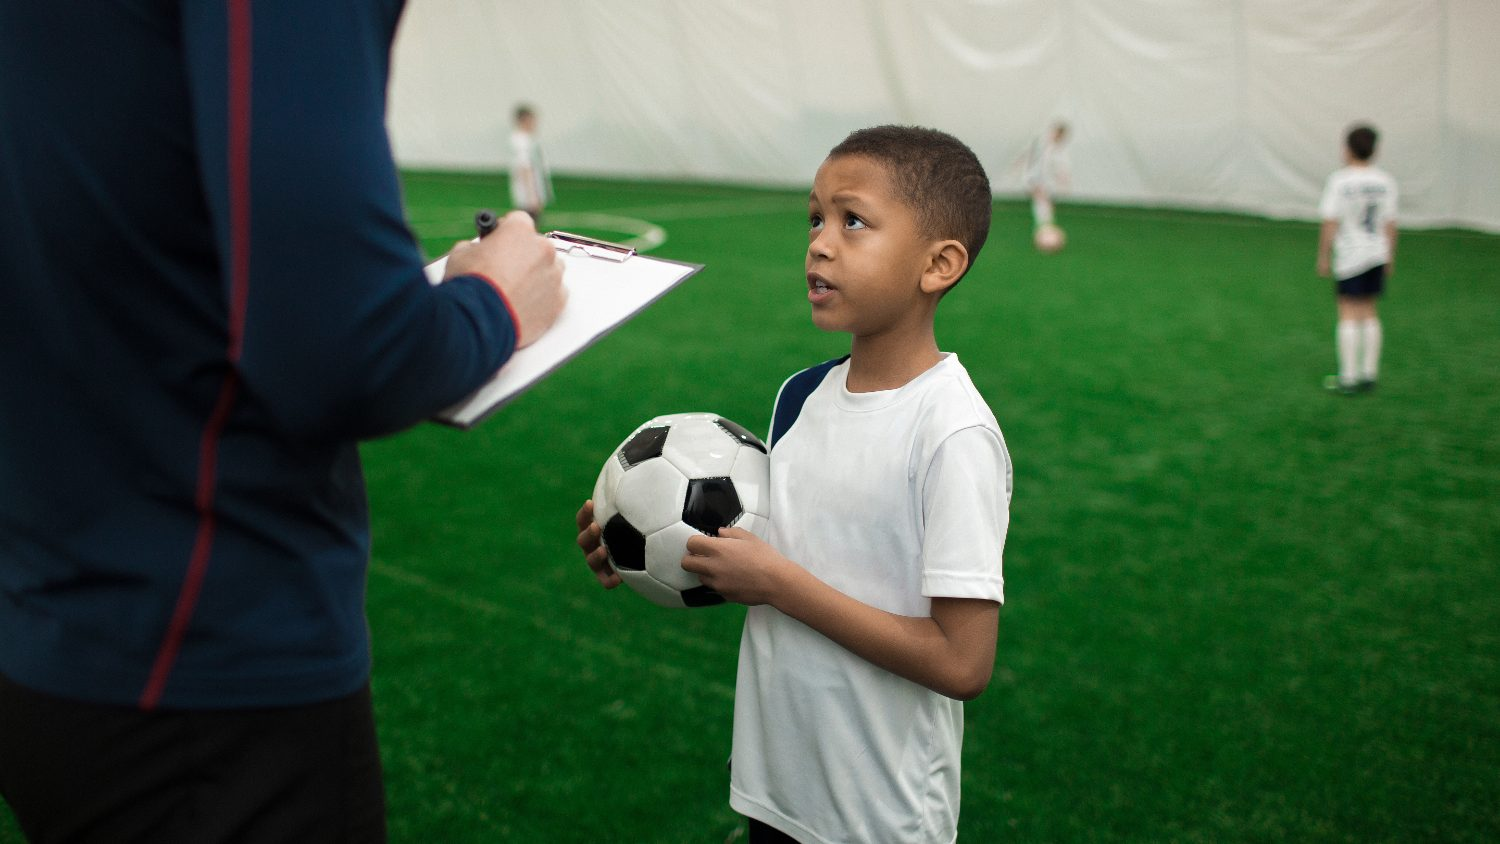 Adorable football player with ball talking to his trainer on pitch after game